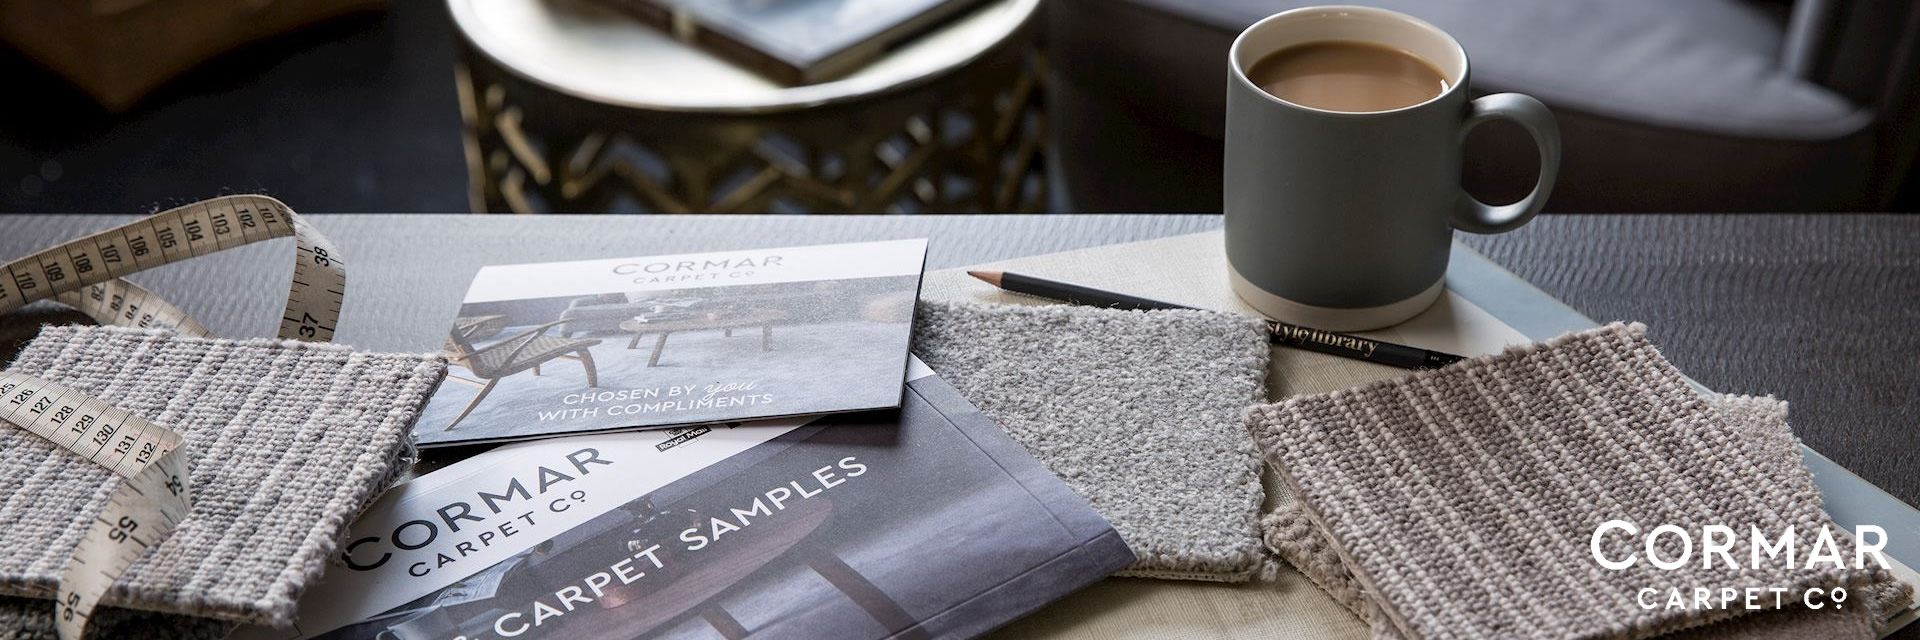 Cormar Carpets in Northern Ireland